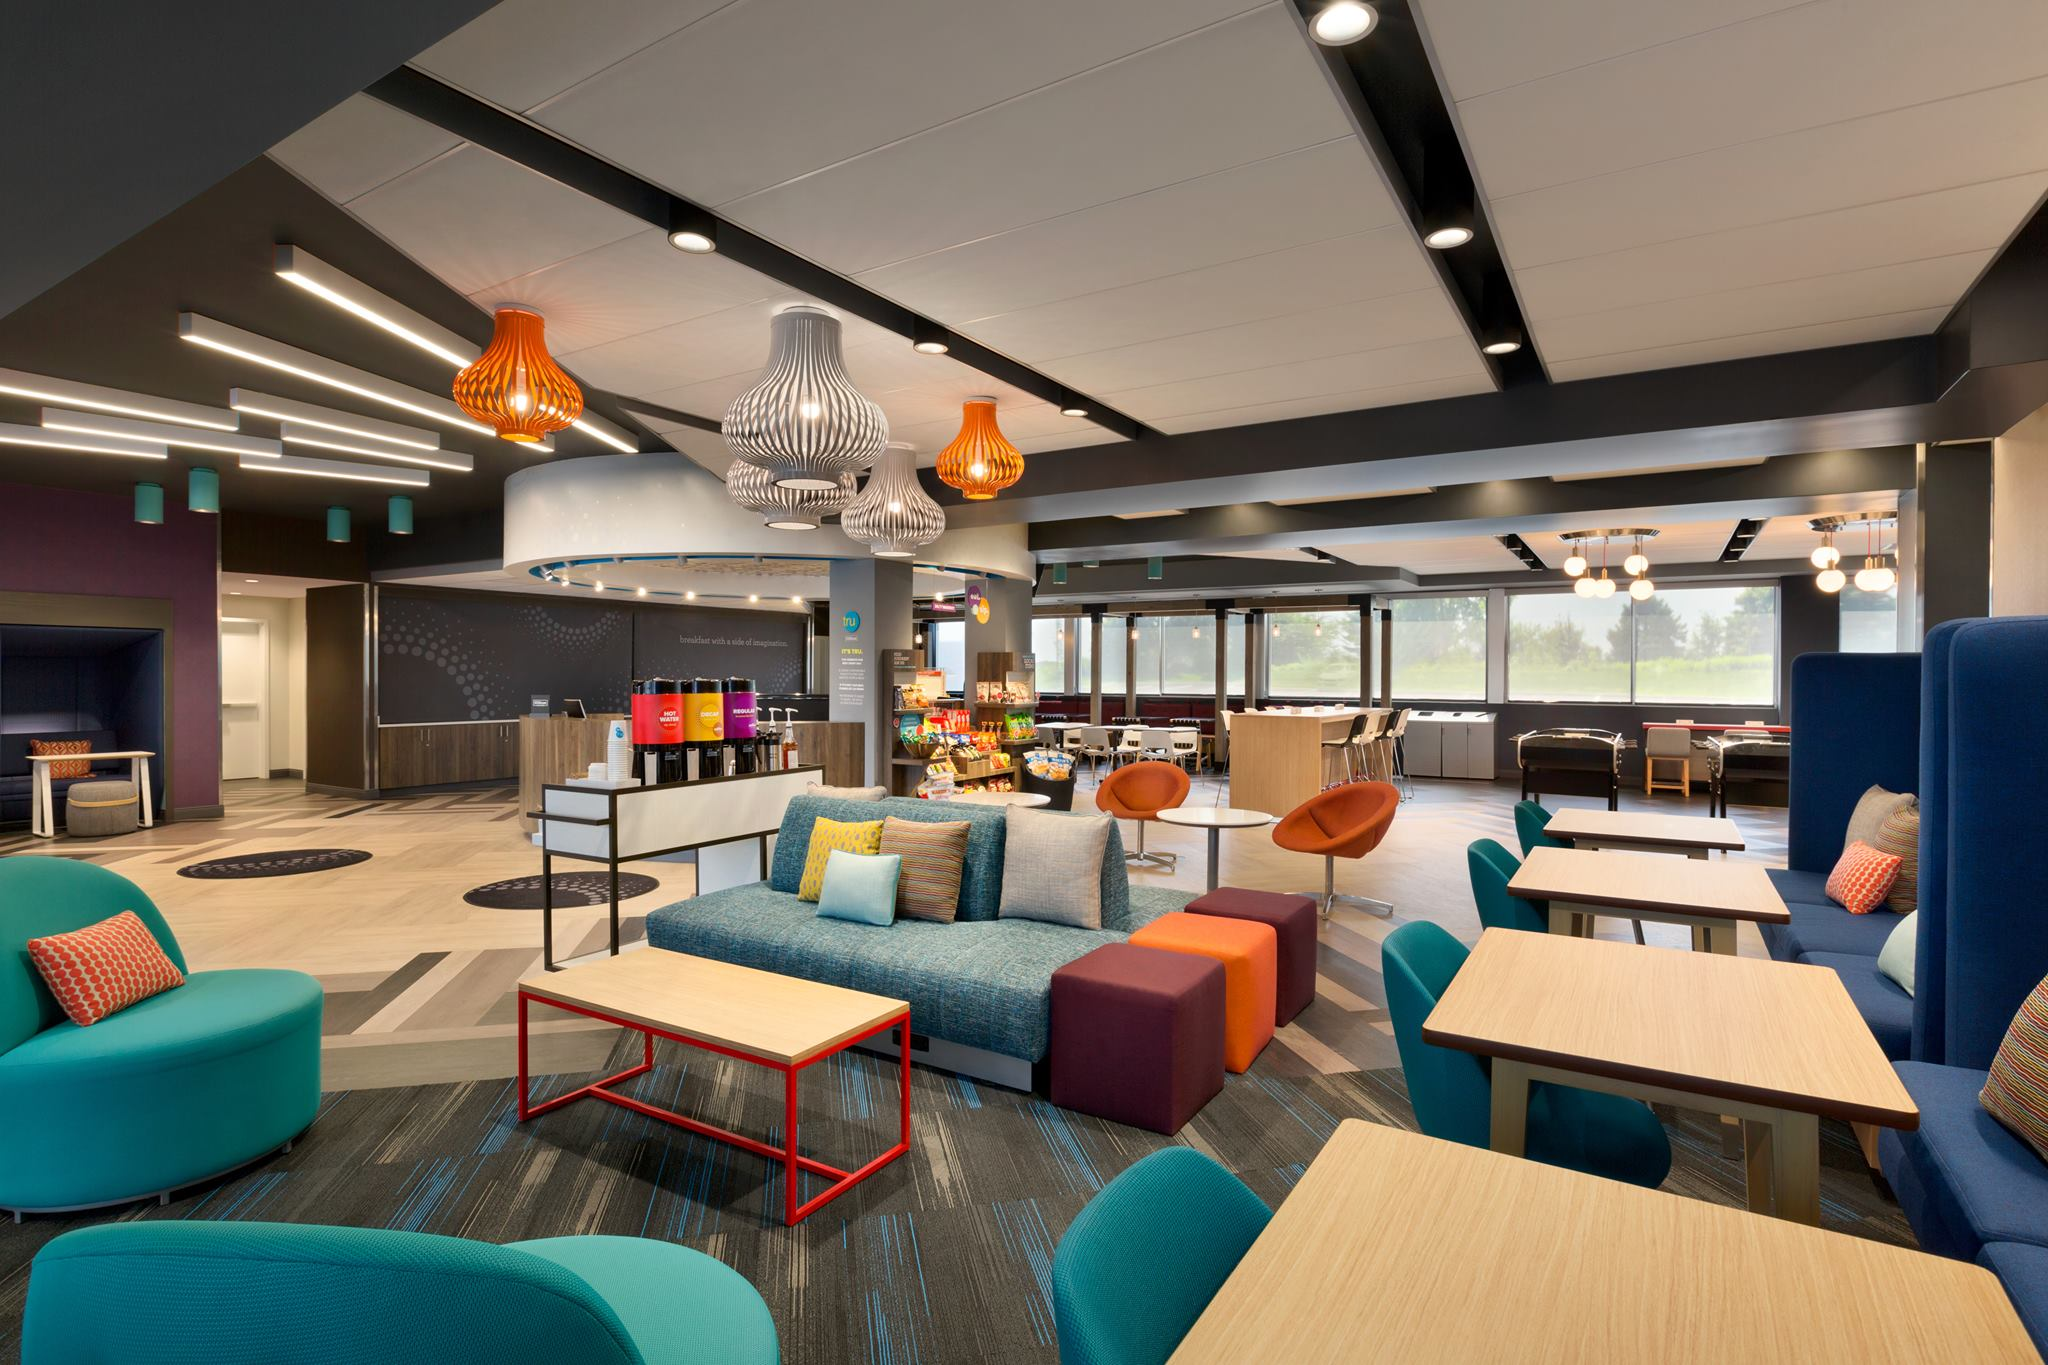 New Tru by Hilton Opens in Heart of Valley Forge